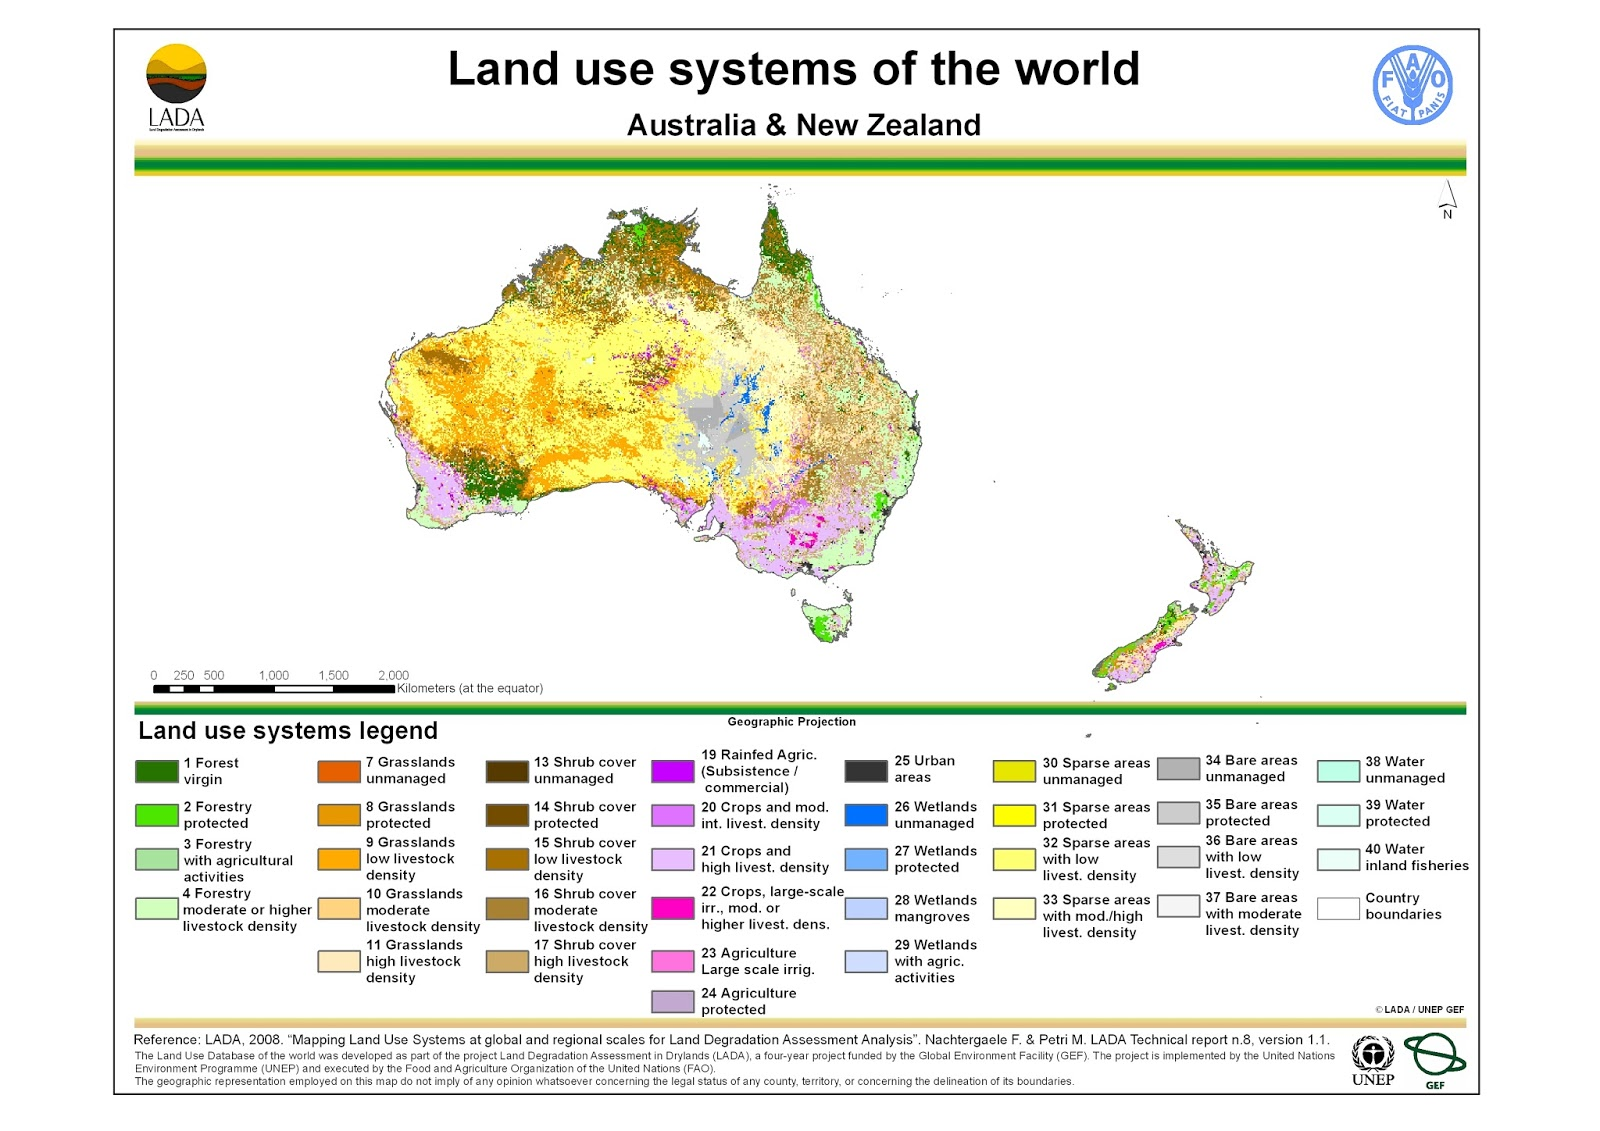 Australia: Land use map